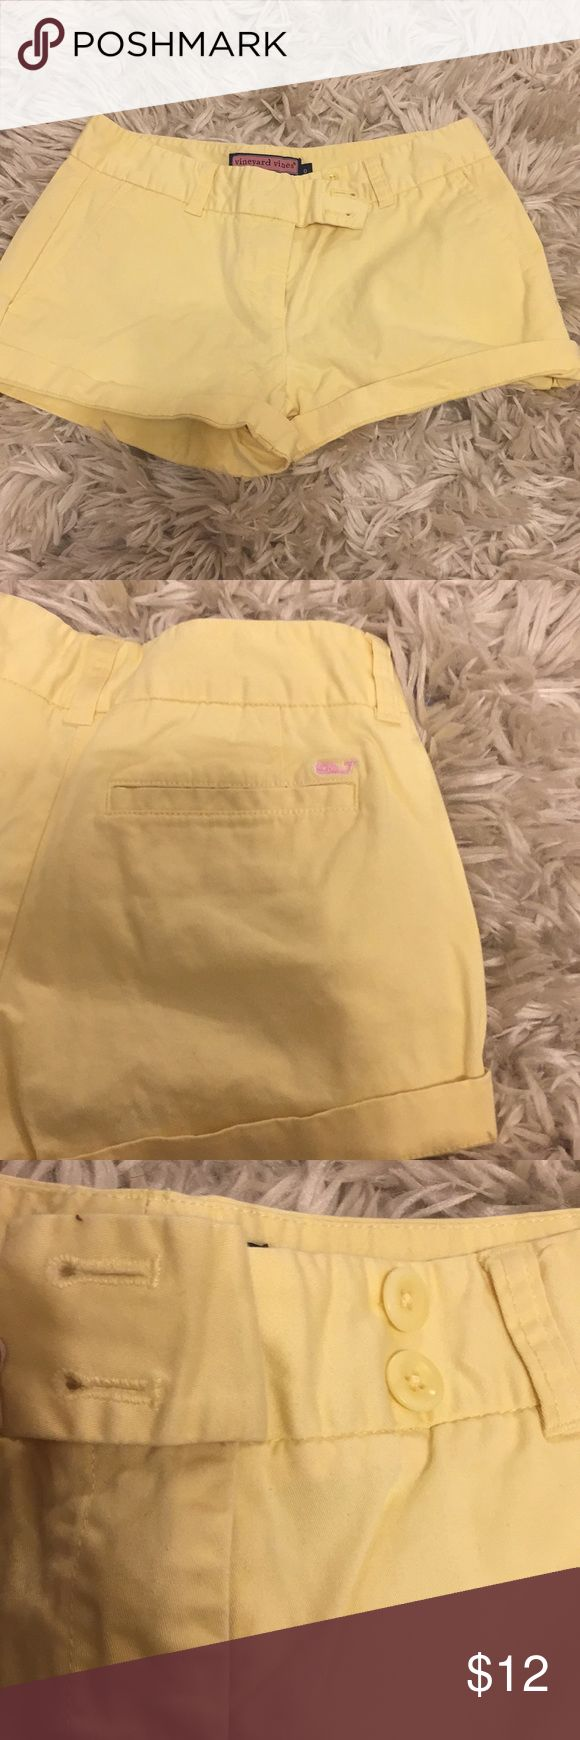 Vineyard Vines women's yellow shorts size 0 Amazing for summer or anywhere warm! Zip up/bottom front vineyard vines shorts yellow with front and back pockets size women's 0 newly worn! No stains or tears Vineyard Vines Shorts